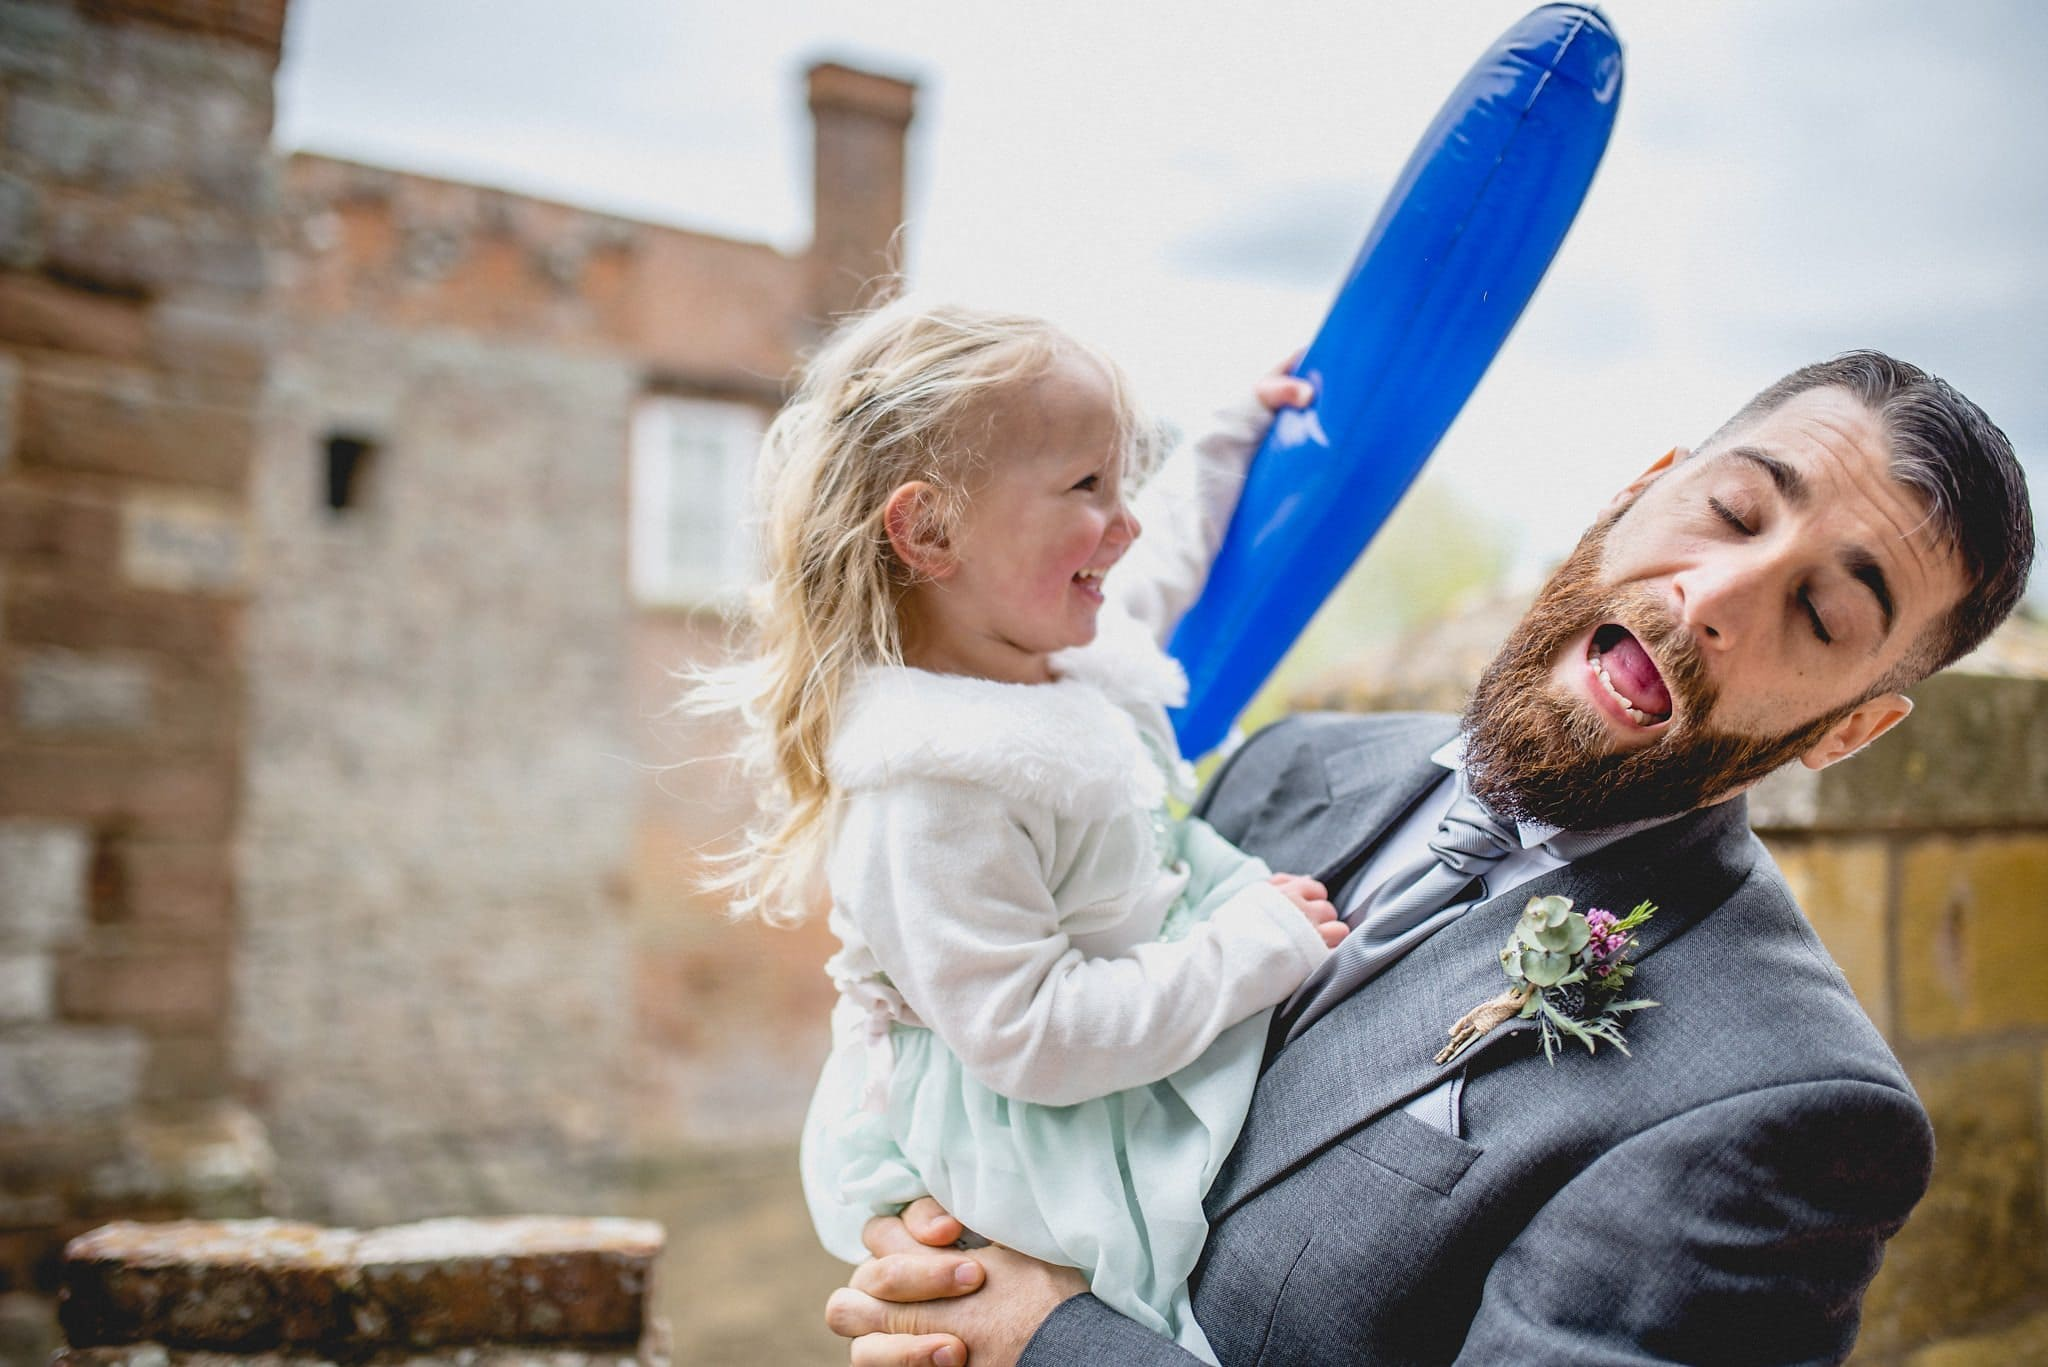 Little girl jokingly hitting a groomsman with a balloon